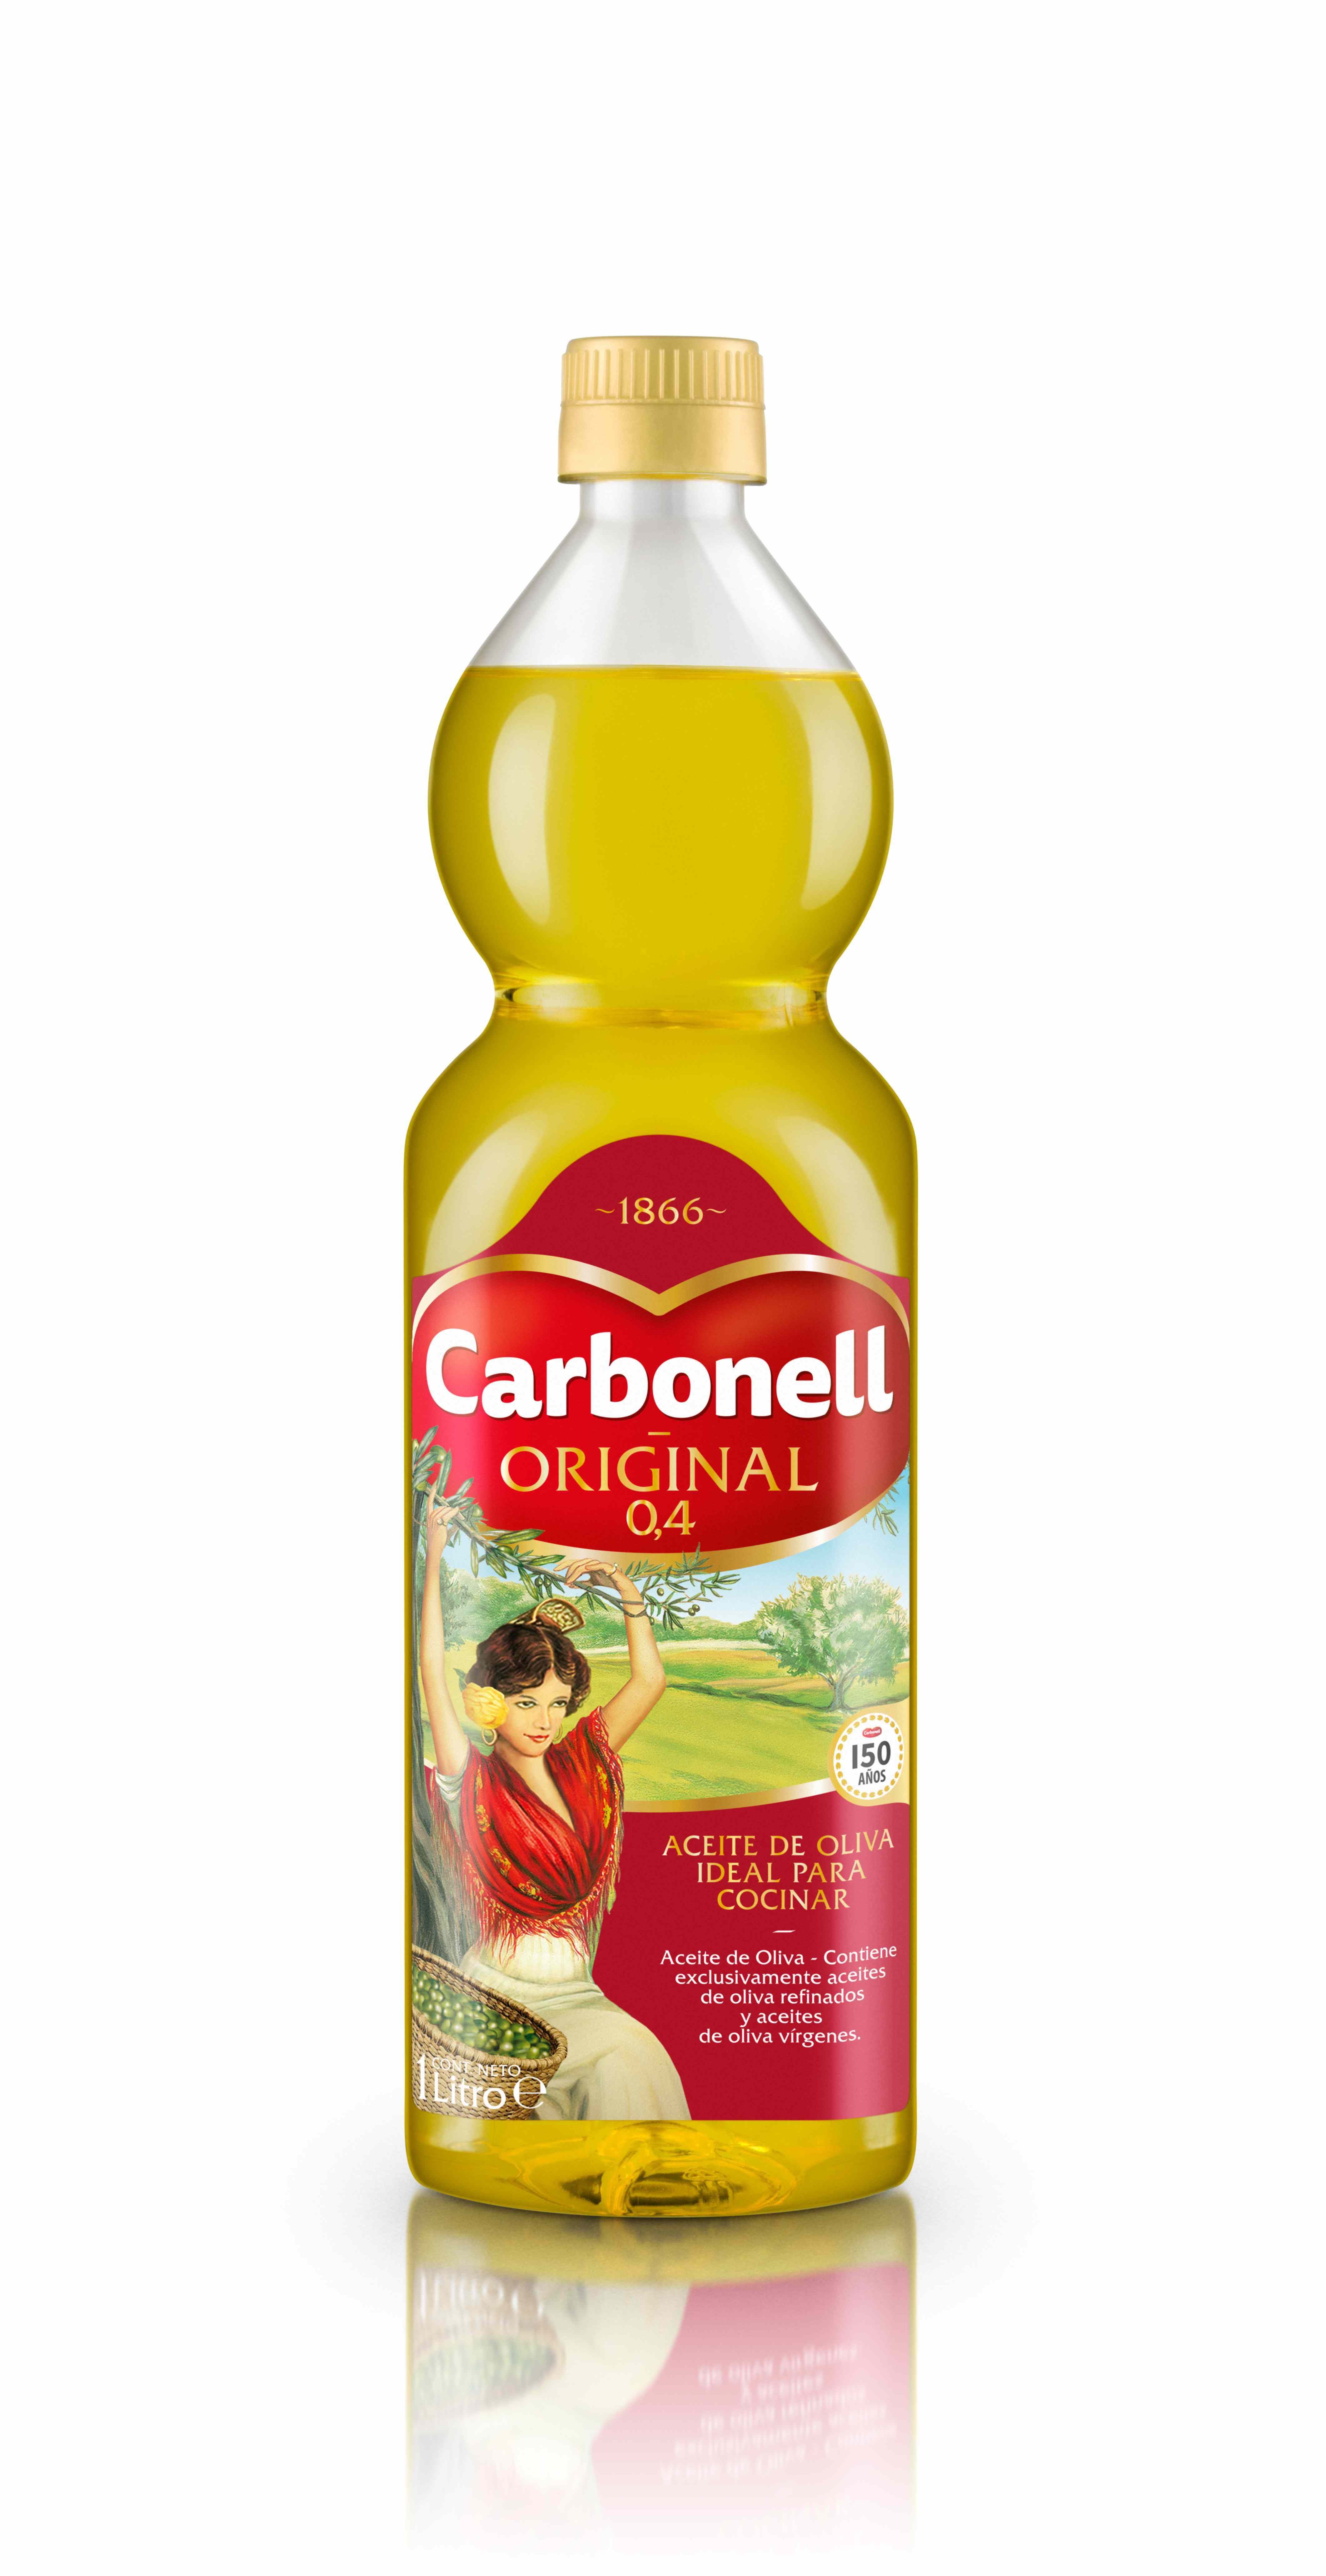 nueva-botella-carbonell-original-04